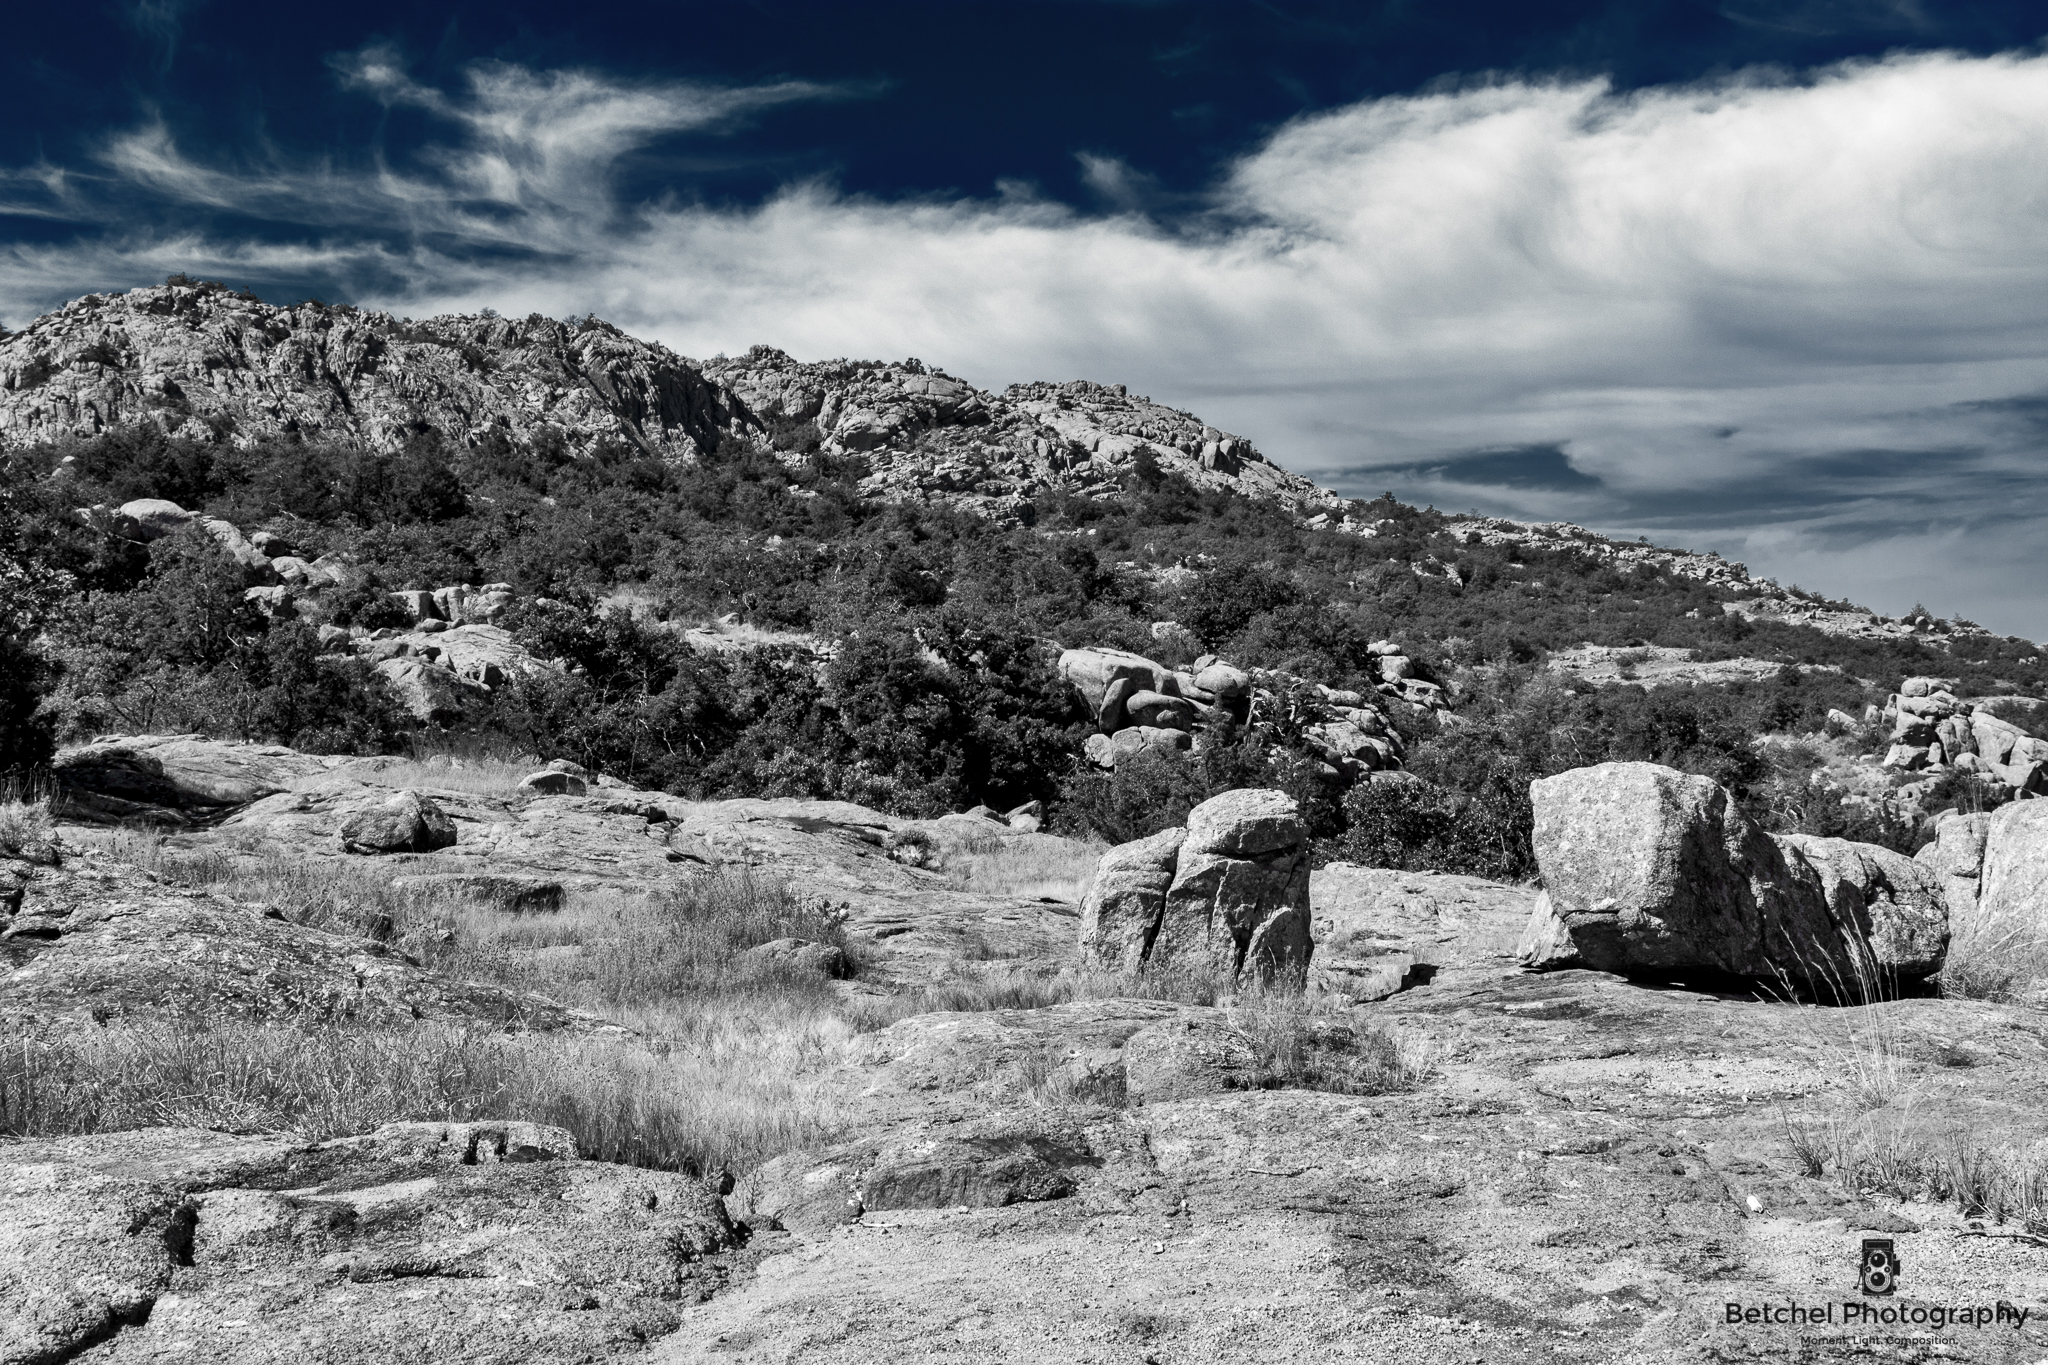 Elk Mountain - Wichita Mountains Wildlife Refuge. Image by Betchel Photography of Edmond.